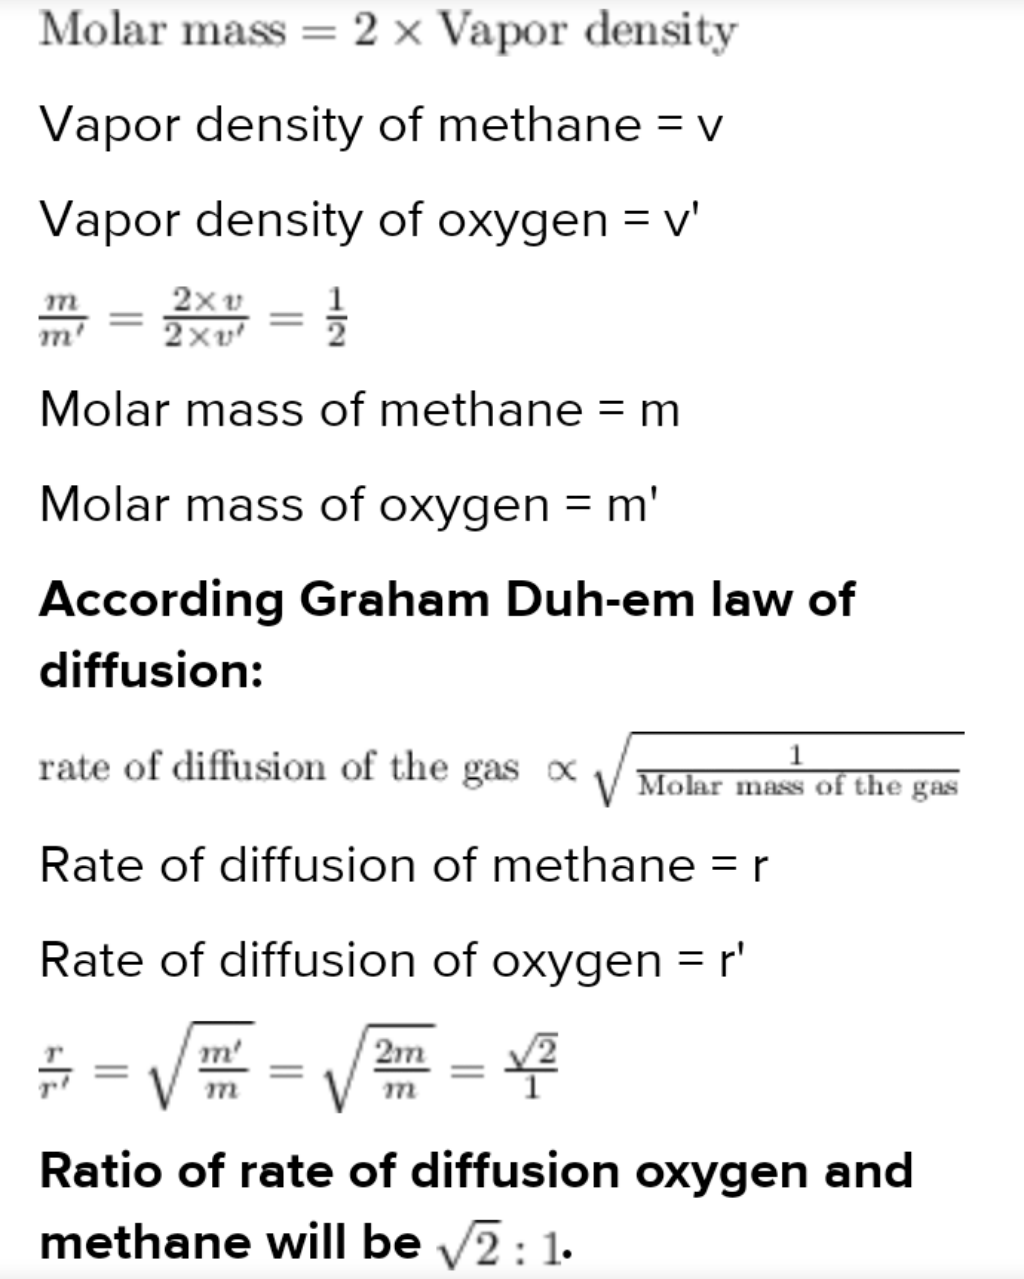 If the densities of methane and oxygen are in the ratio 1:2, the ratio of rate of diffusion of O2 and CH4 is respectively